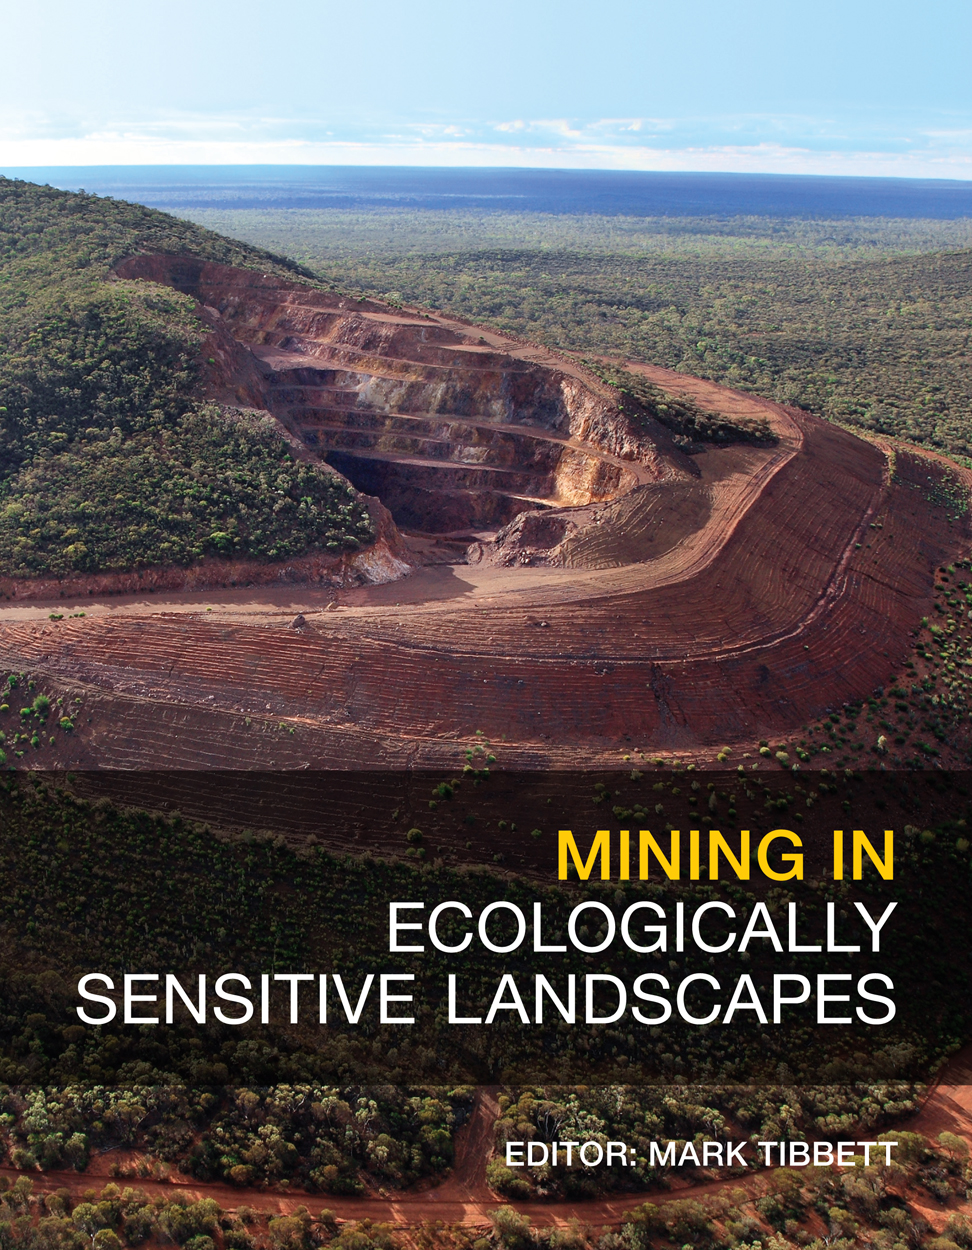 Cover image of Mining in Ecologically Sensitive Landscapes, featuring a ph